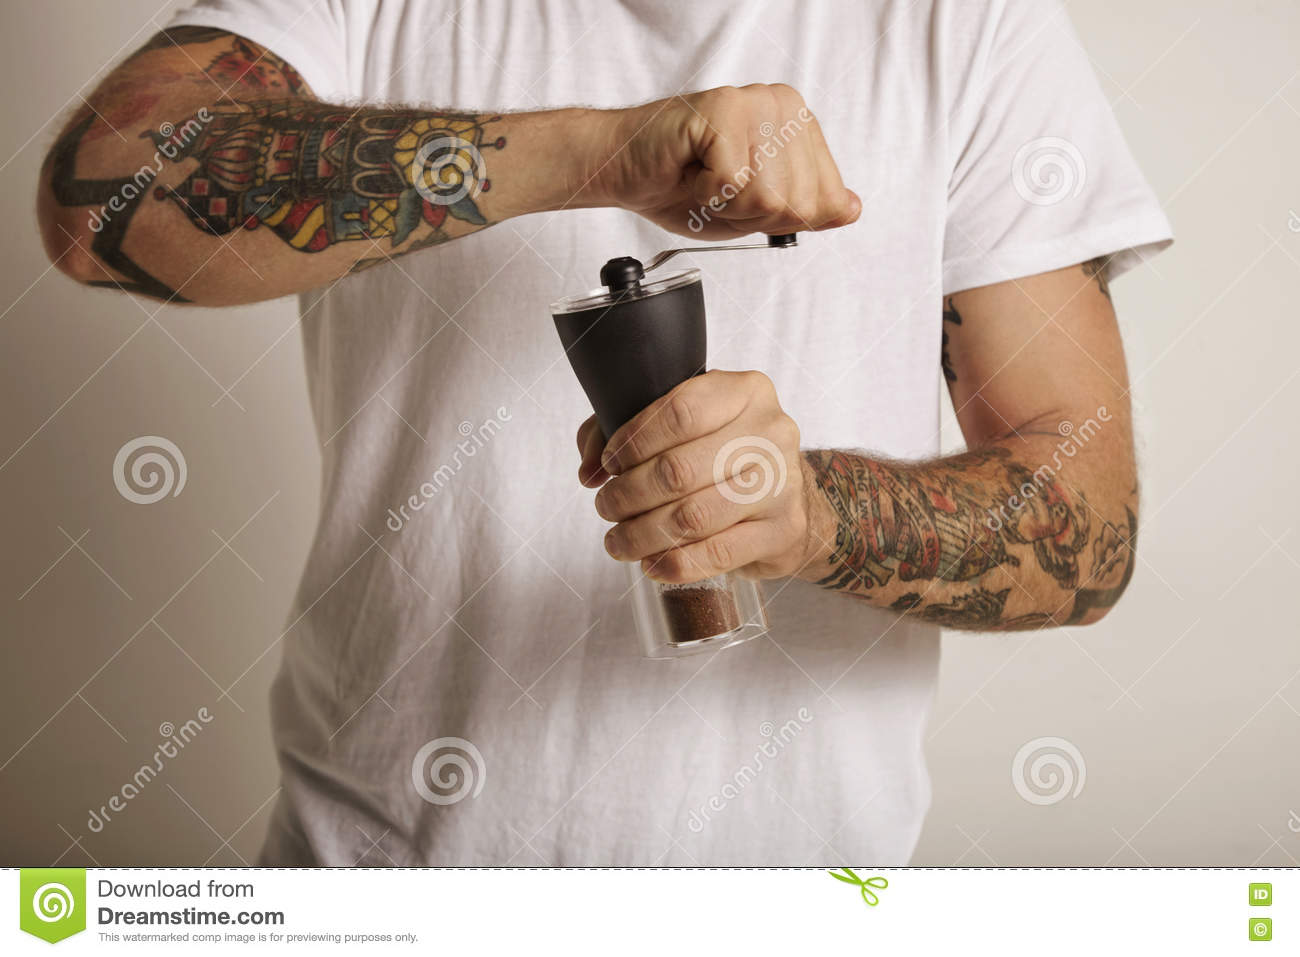 Grinding coffee with a manual grinder